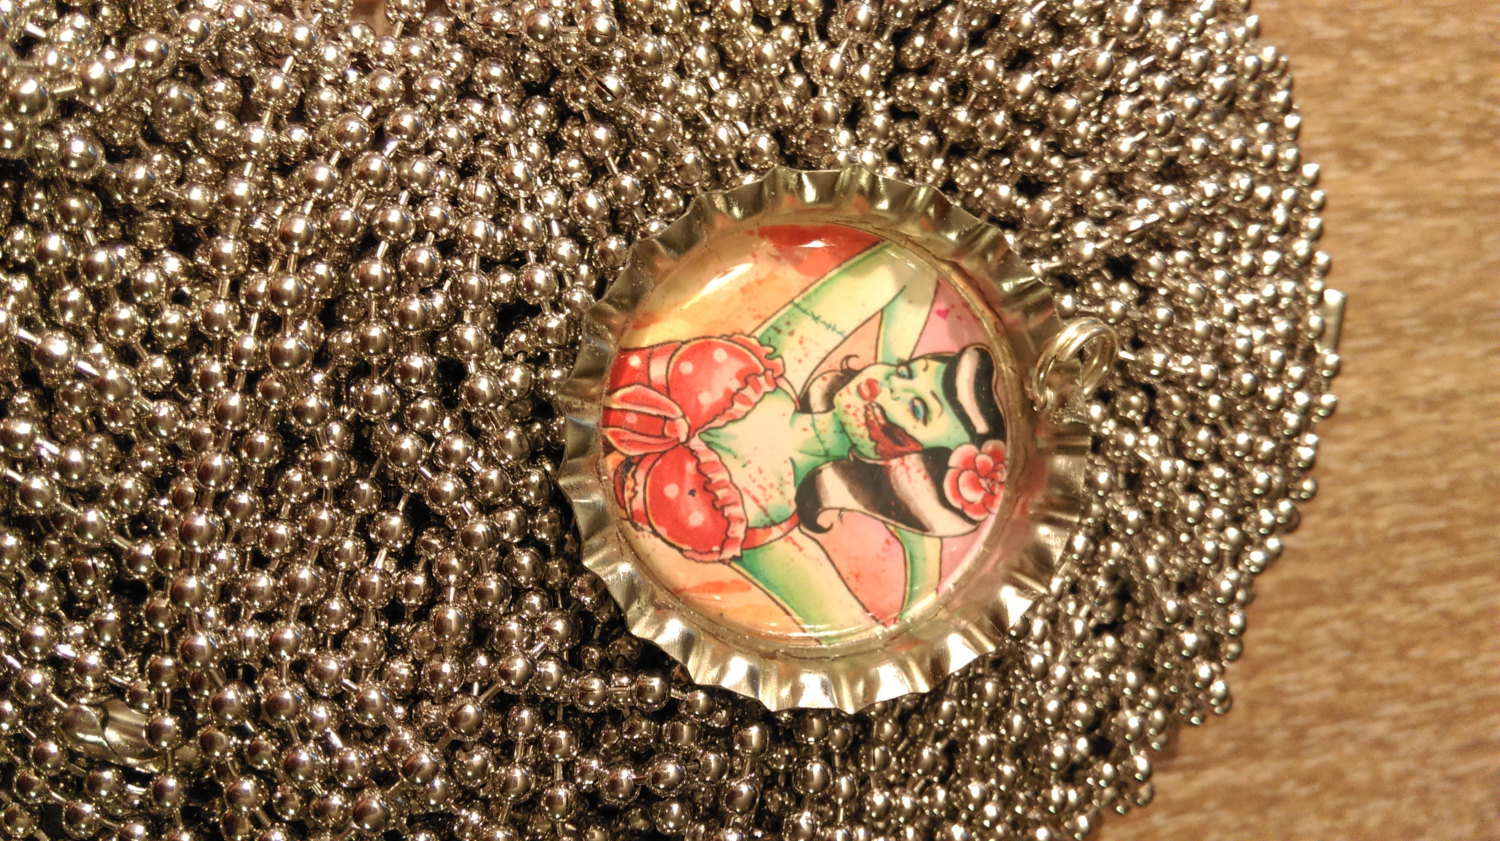 Zombie Polka Dot Pin Up Bottle Cap Necklace With 24